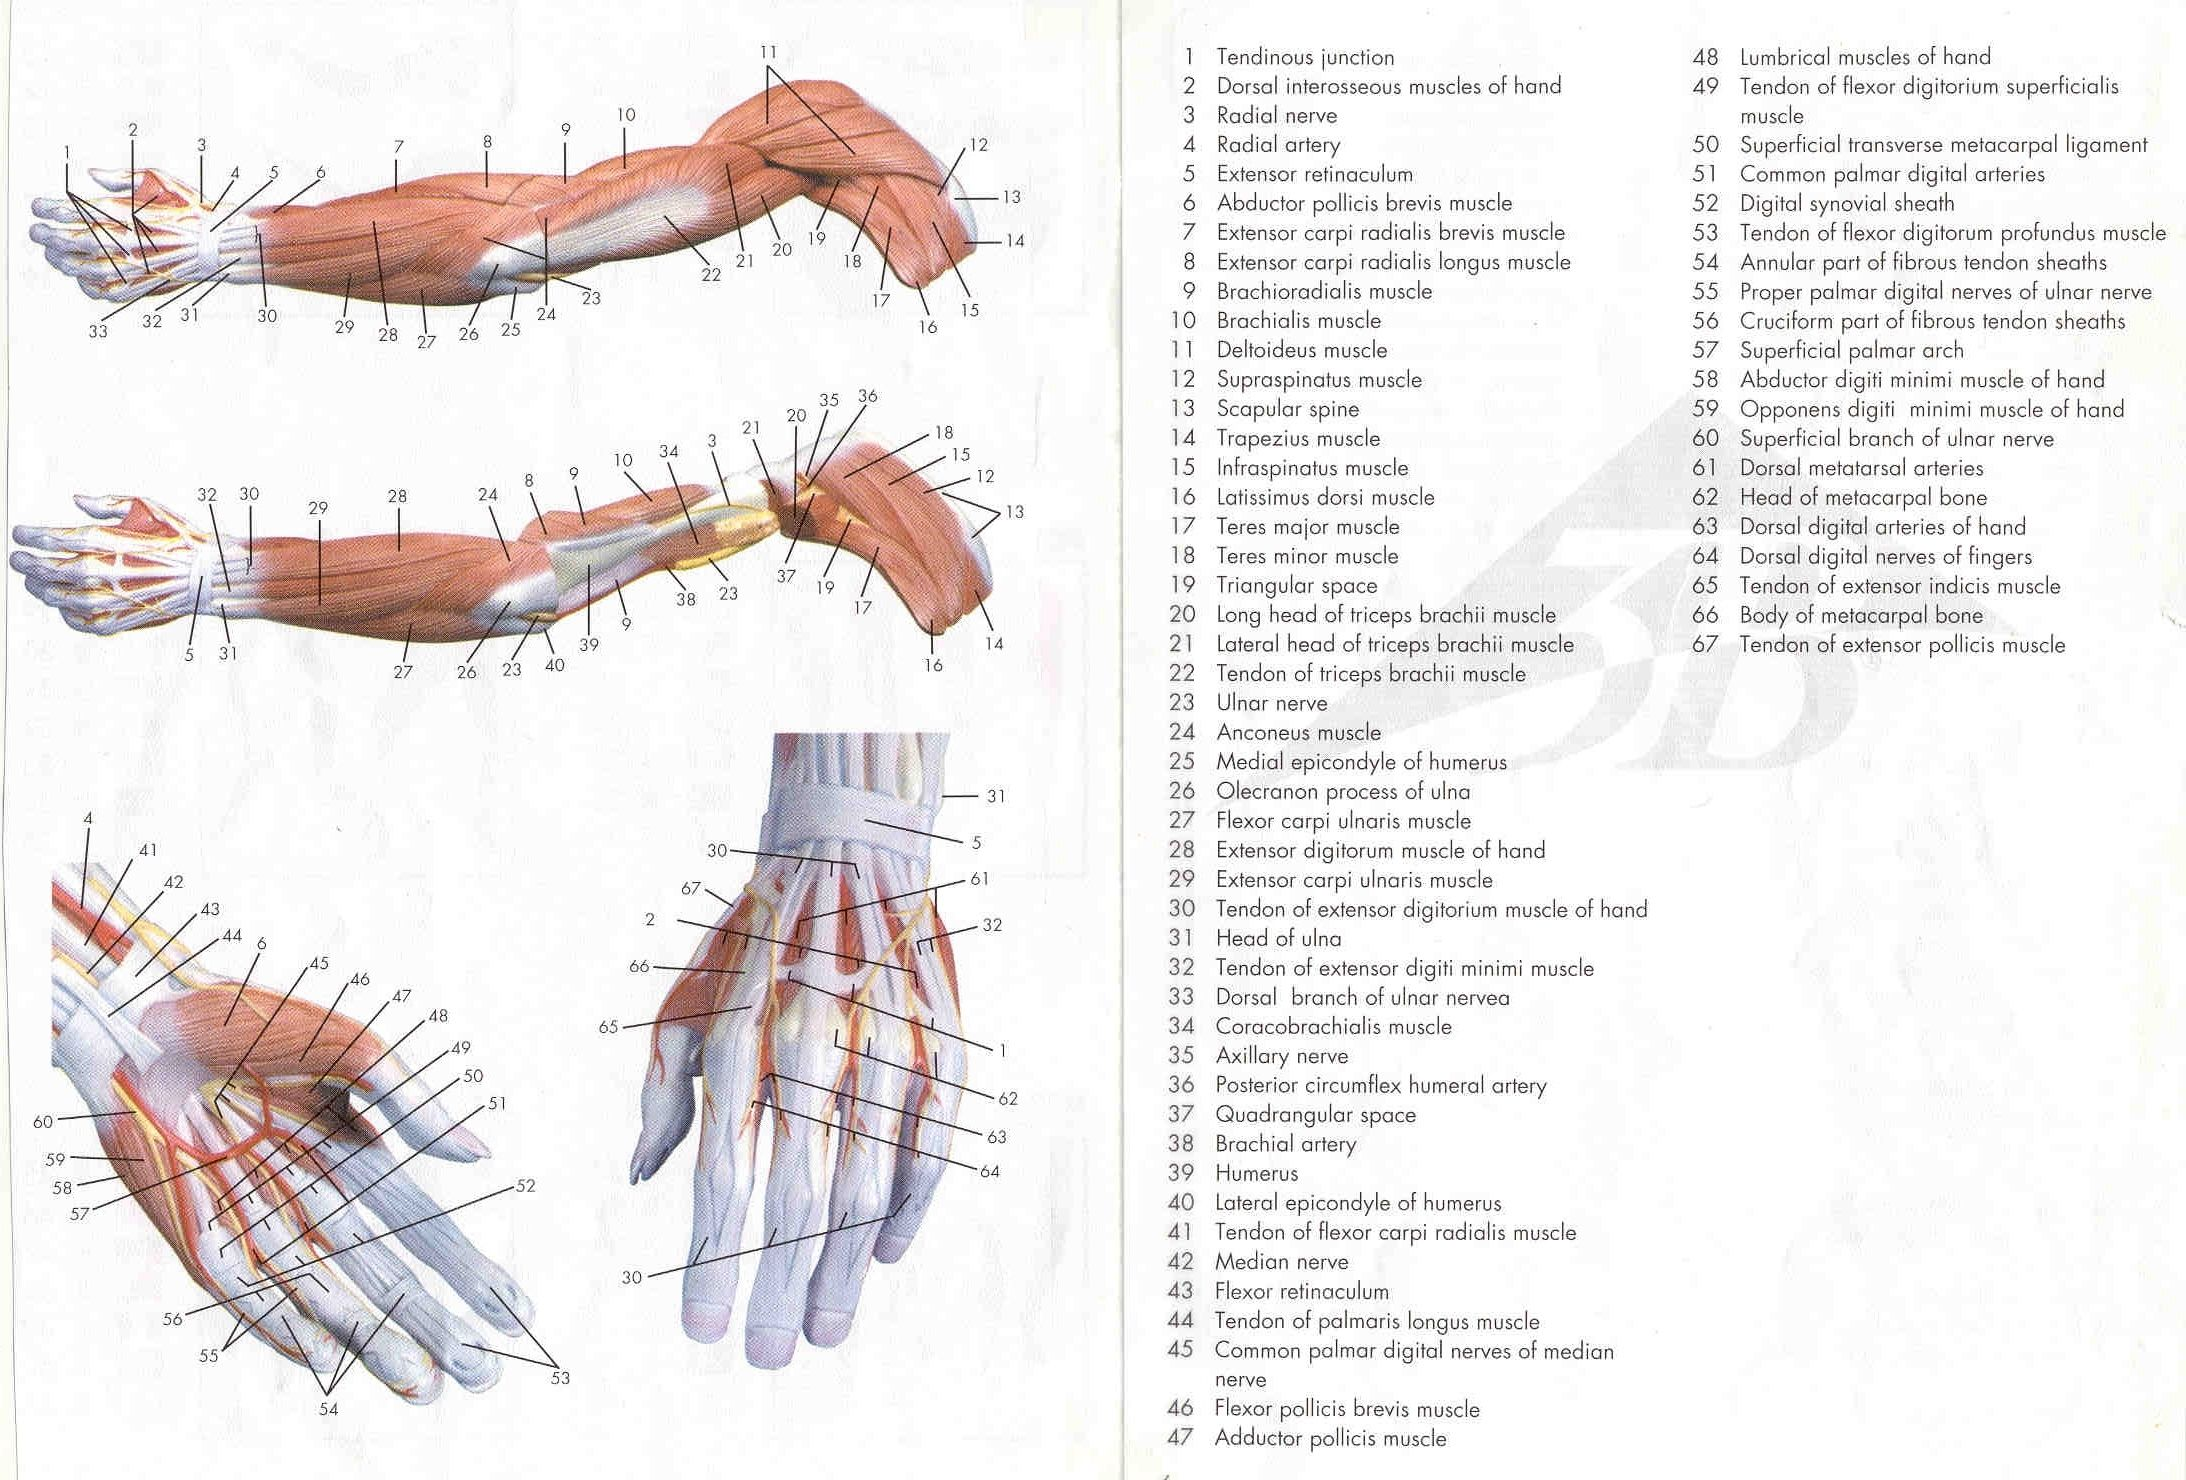 Human Upper Limb And Hand Muscle Tendon Anatomy In Detail